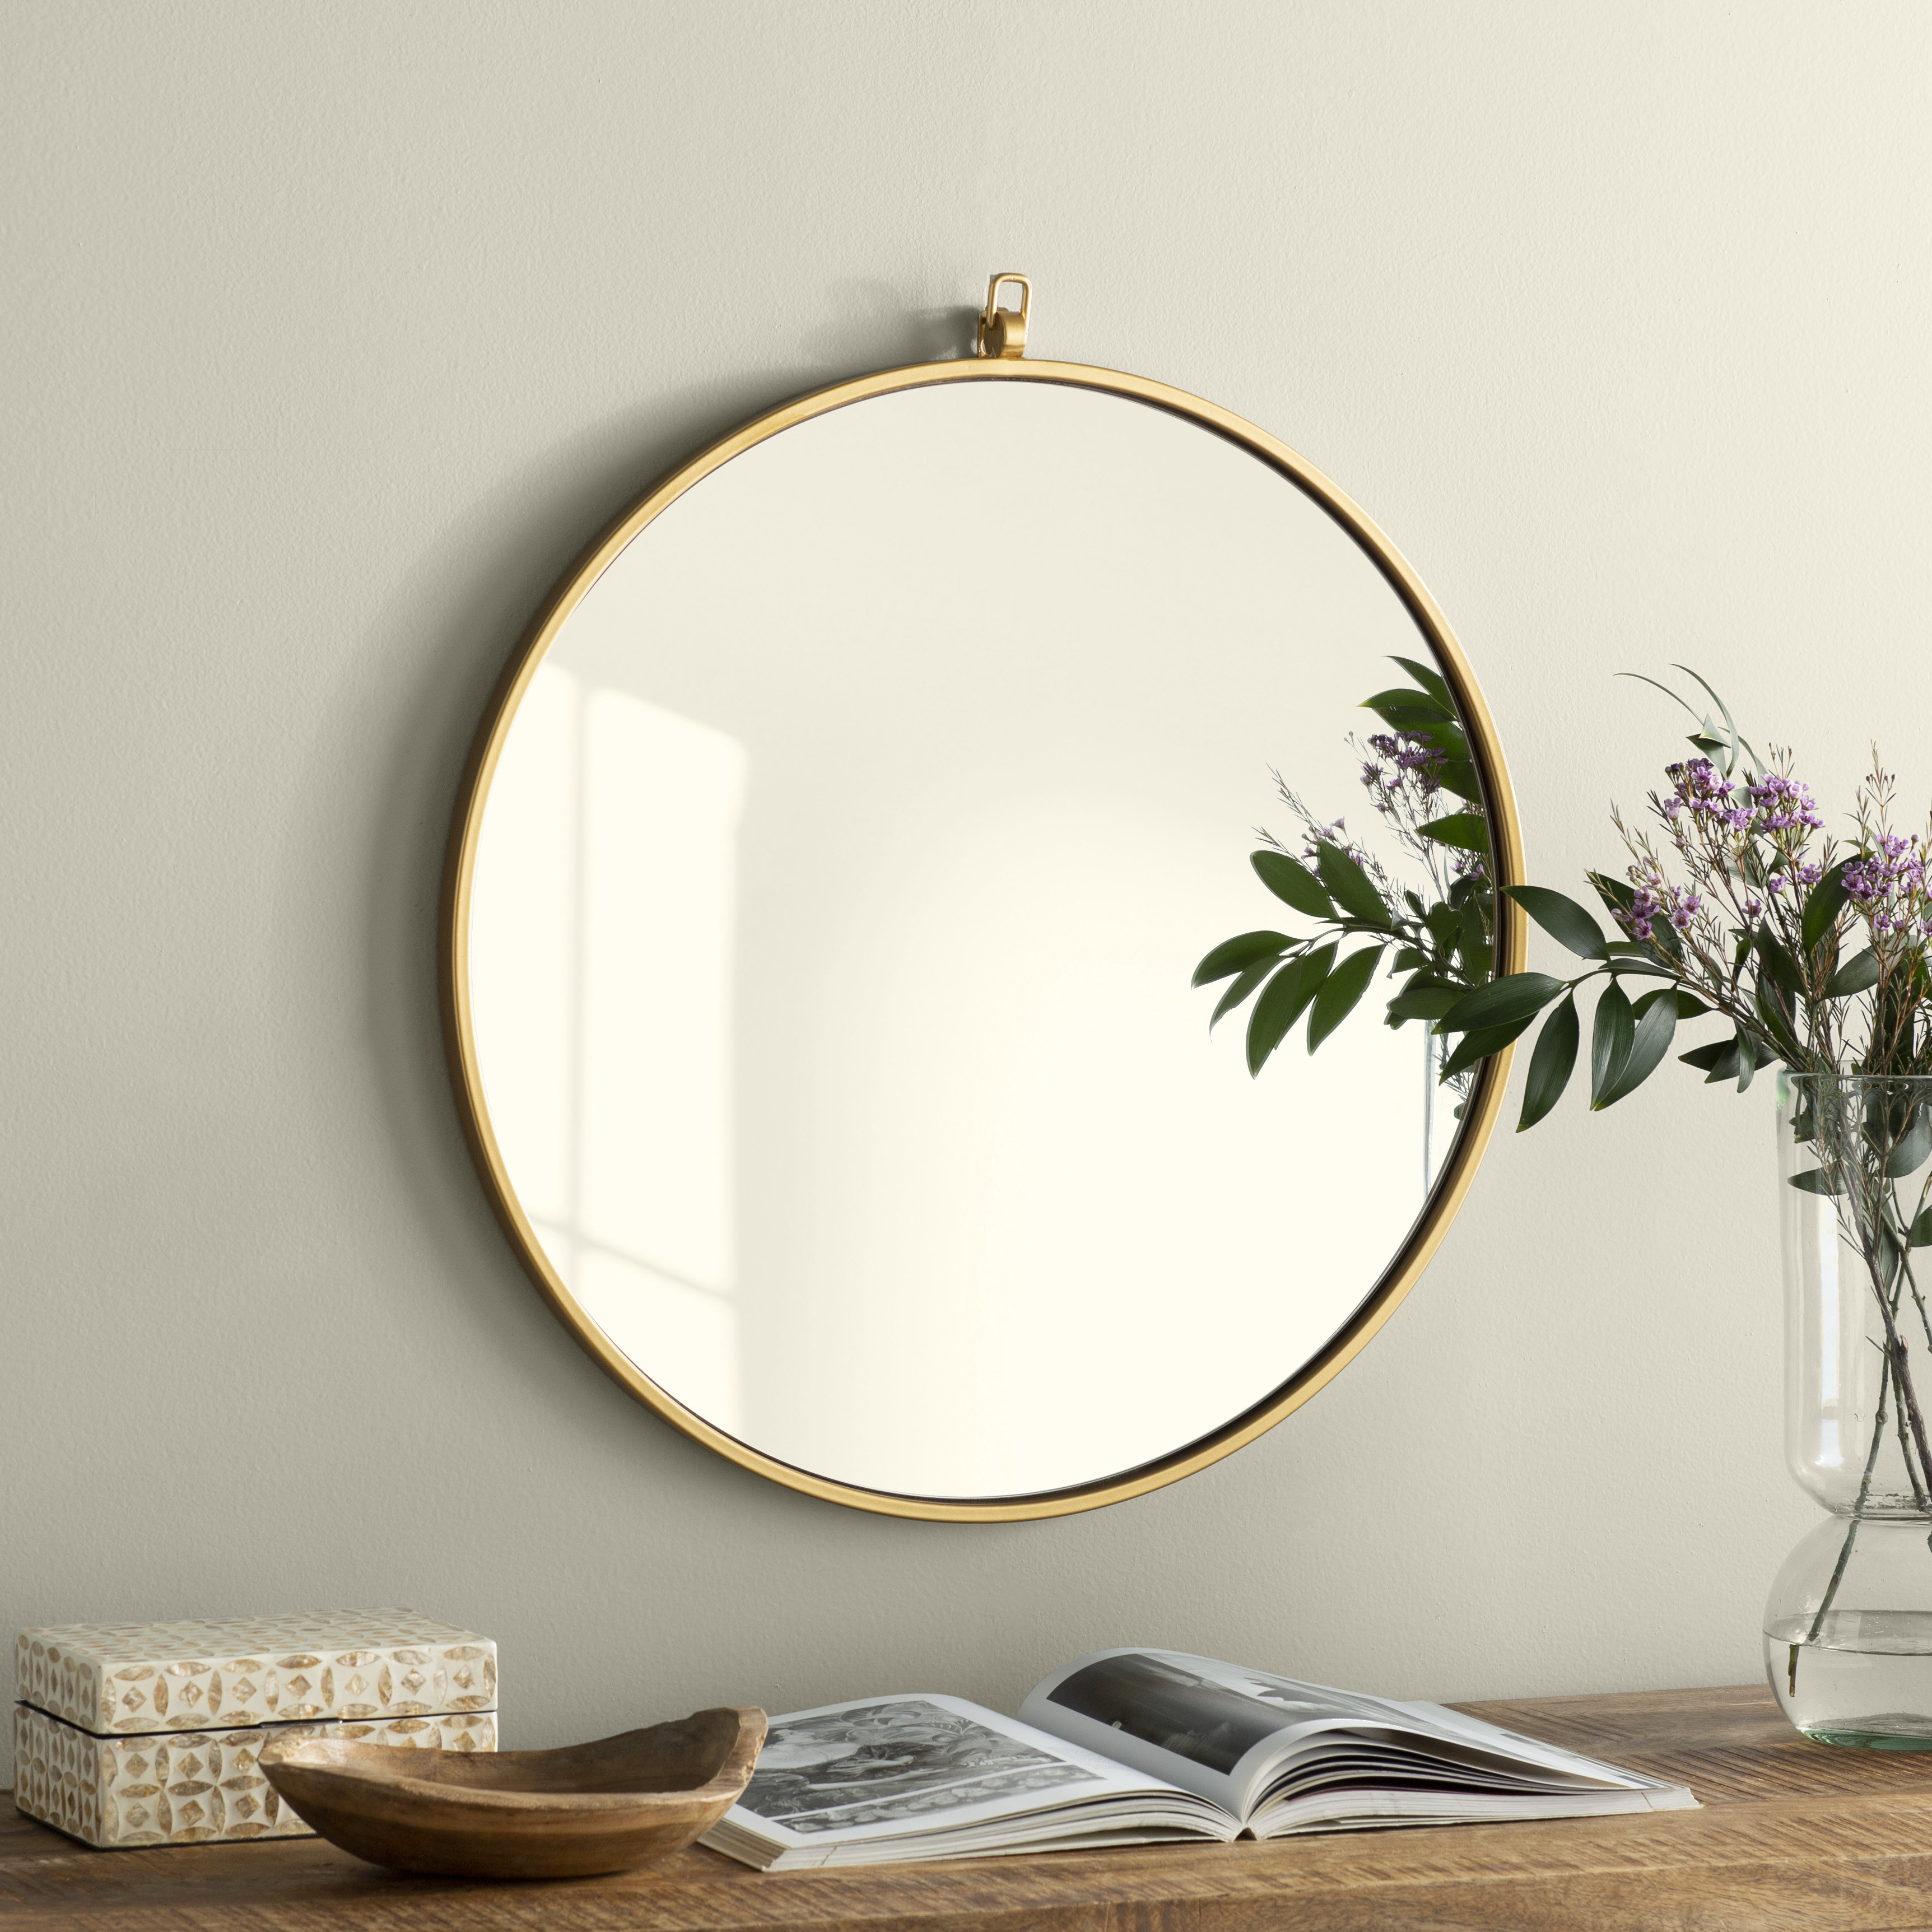 Joss & Main Essentials Accent Mirror Intended For Matthias Round Accent Mirrors (Image 6 of 20)